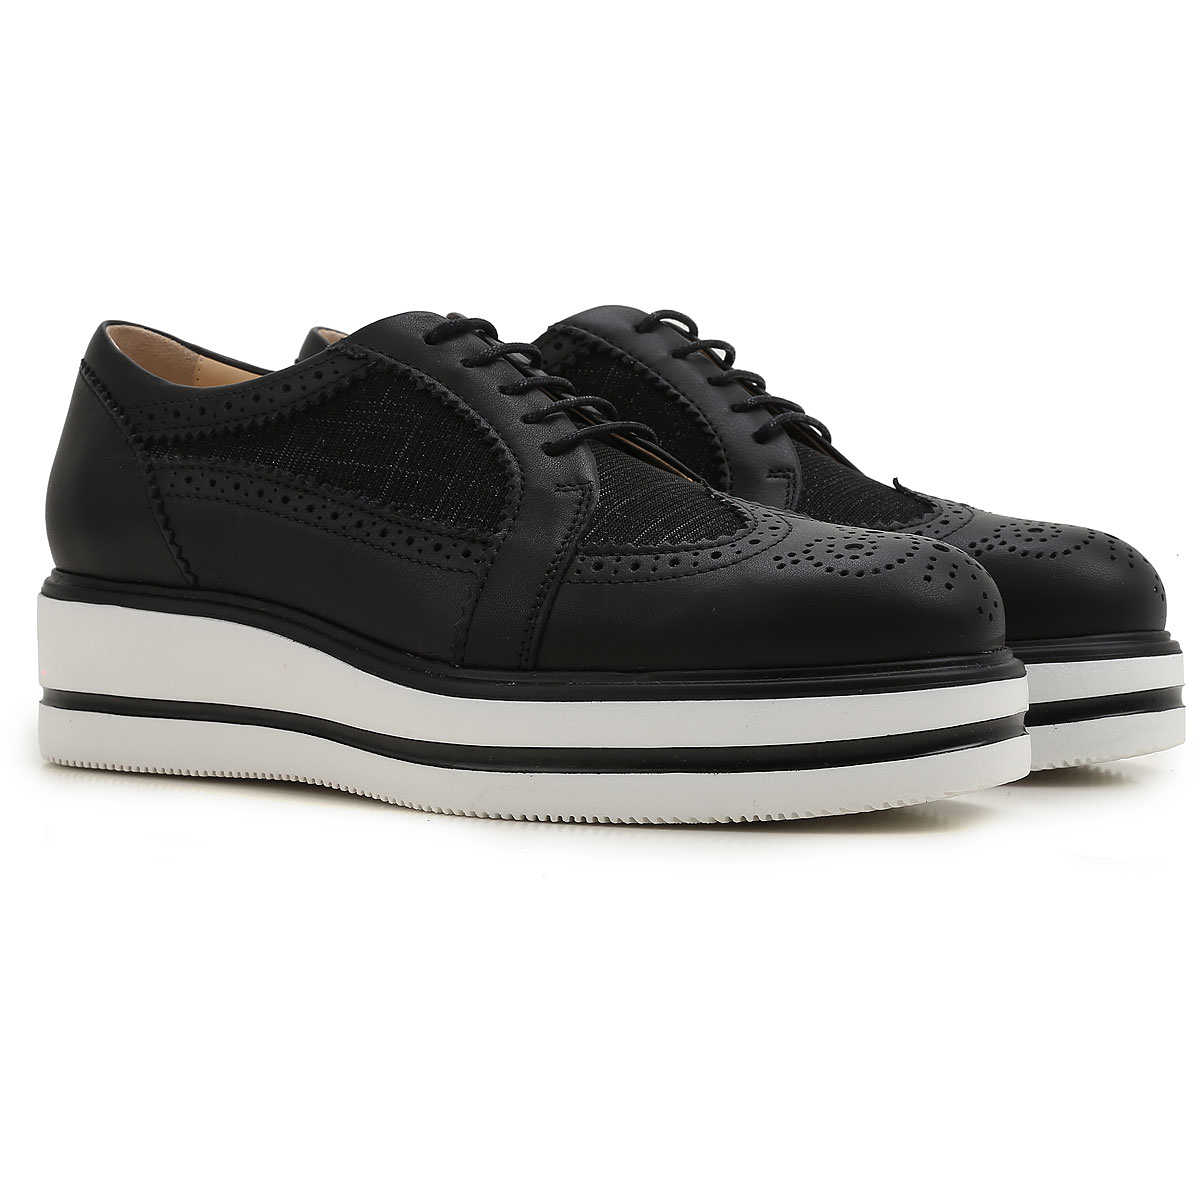 Hogan Brogues Oxford Shoes On Sale in Outlet Black UK - GOOFASH